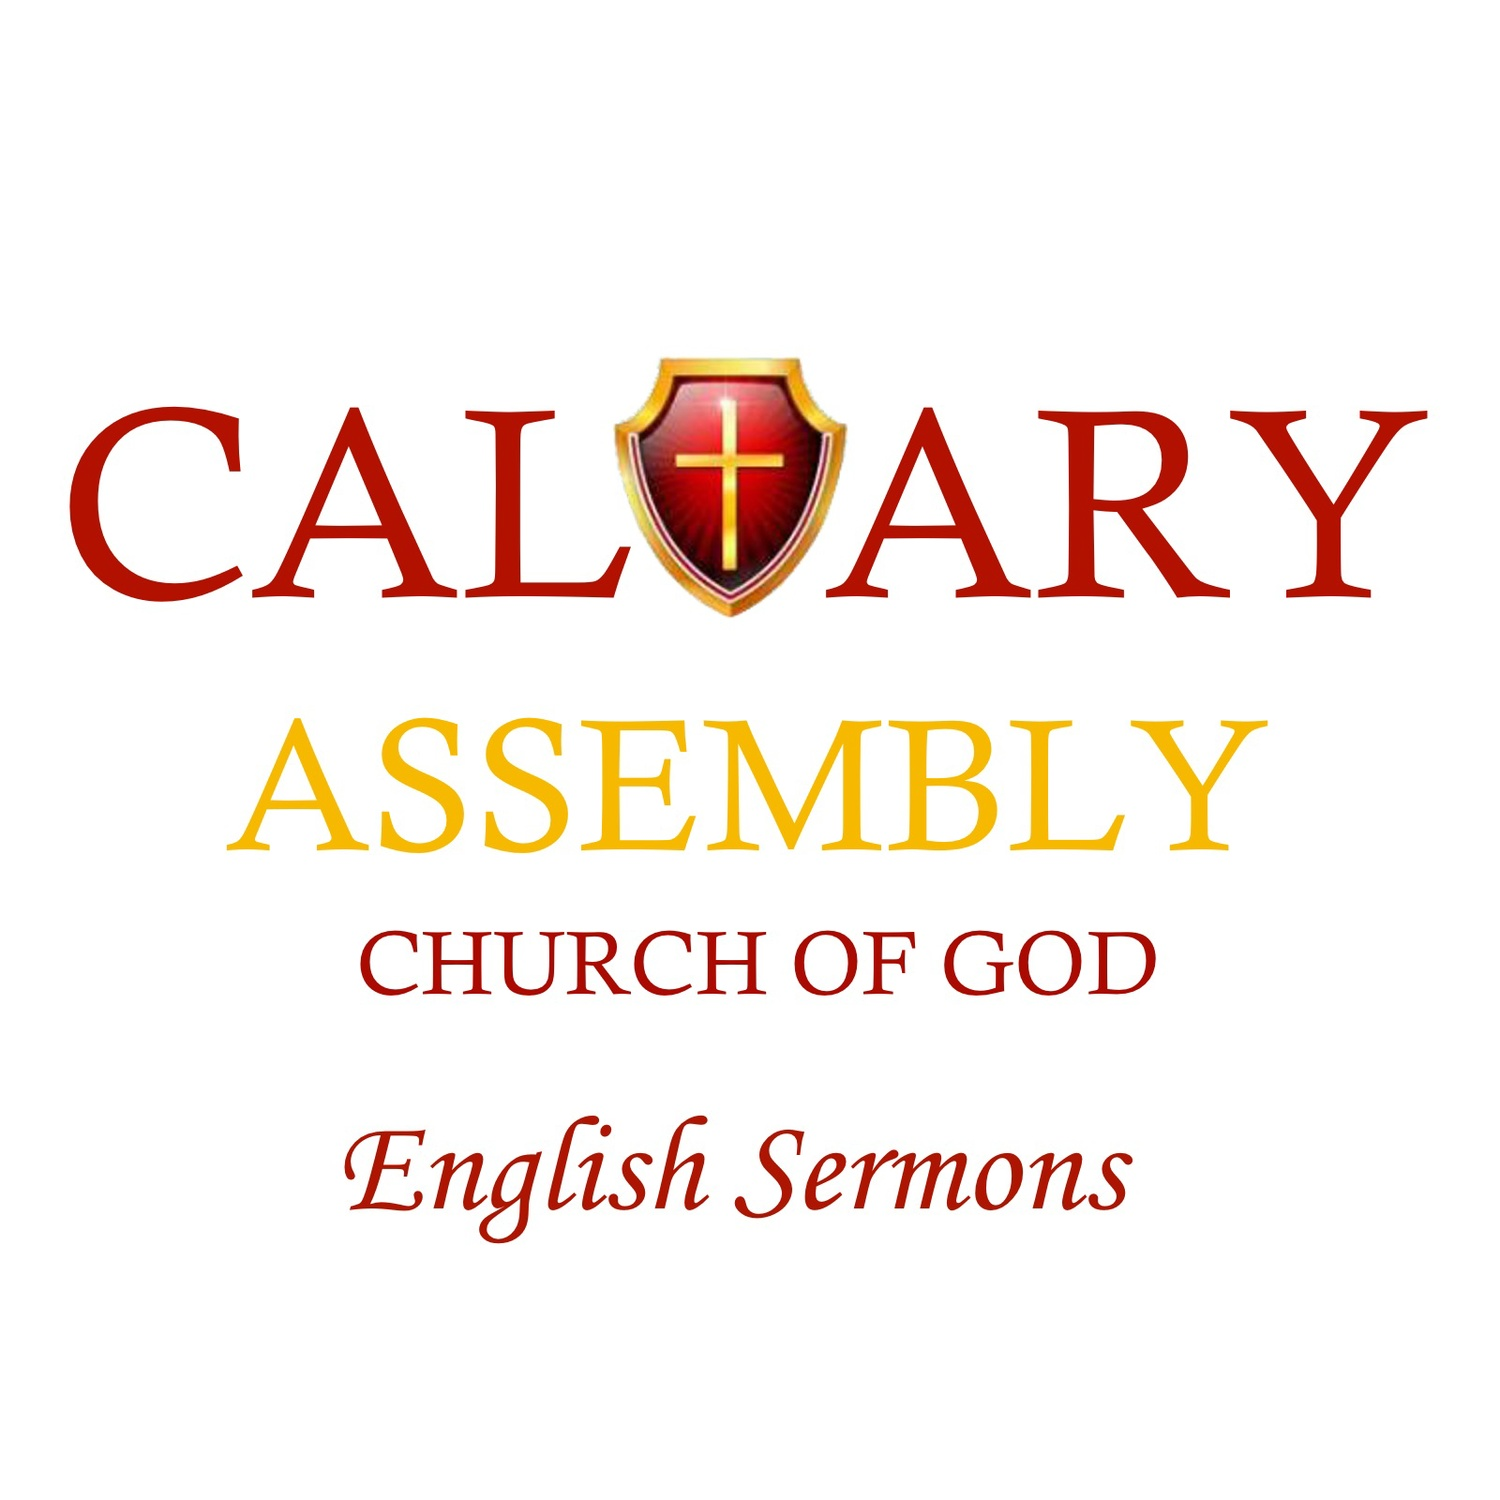 English Sermons - Calvary Assembly